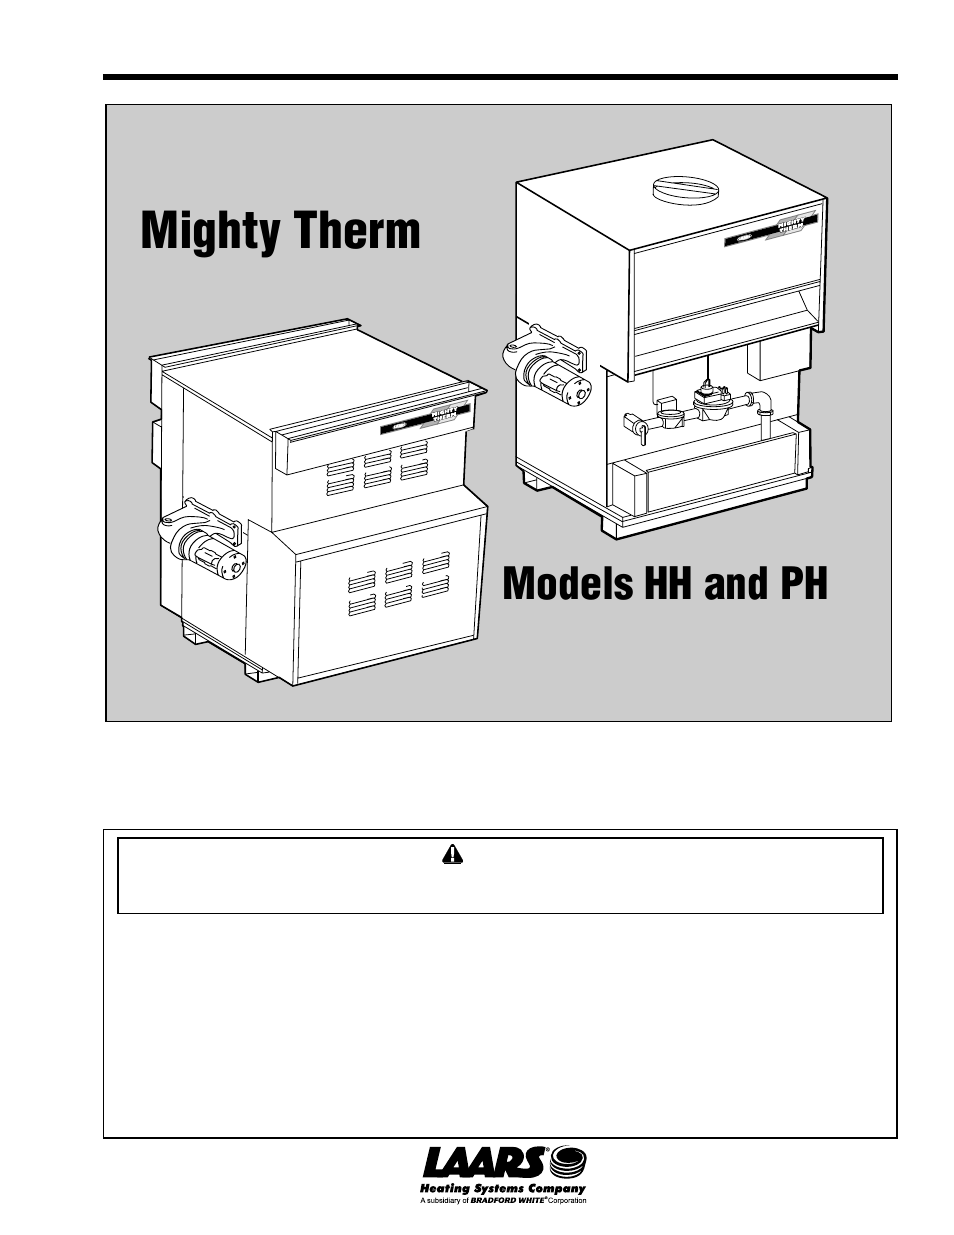 laars mighty therm ph (sizes 500 1825) installation, operation and